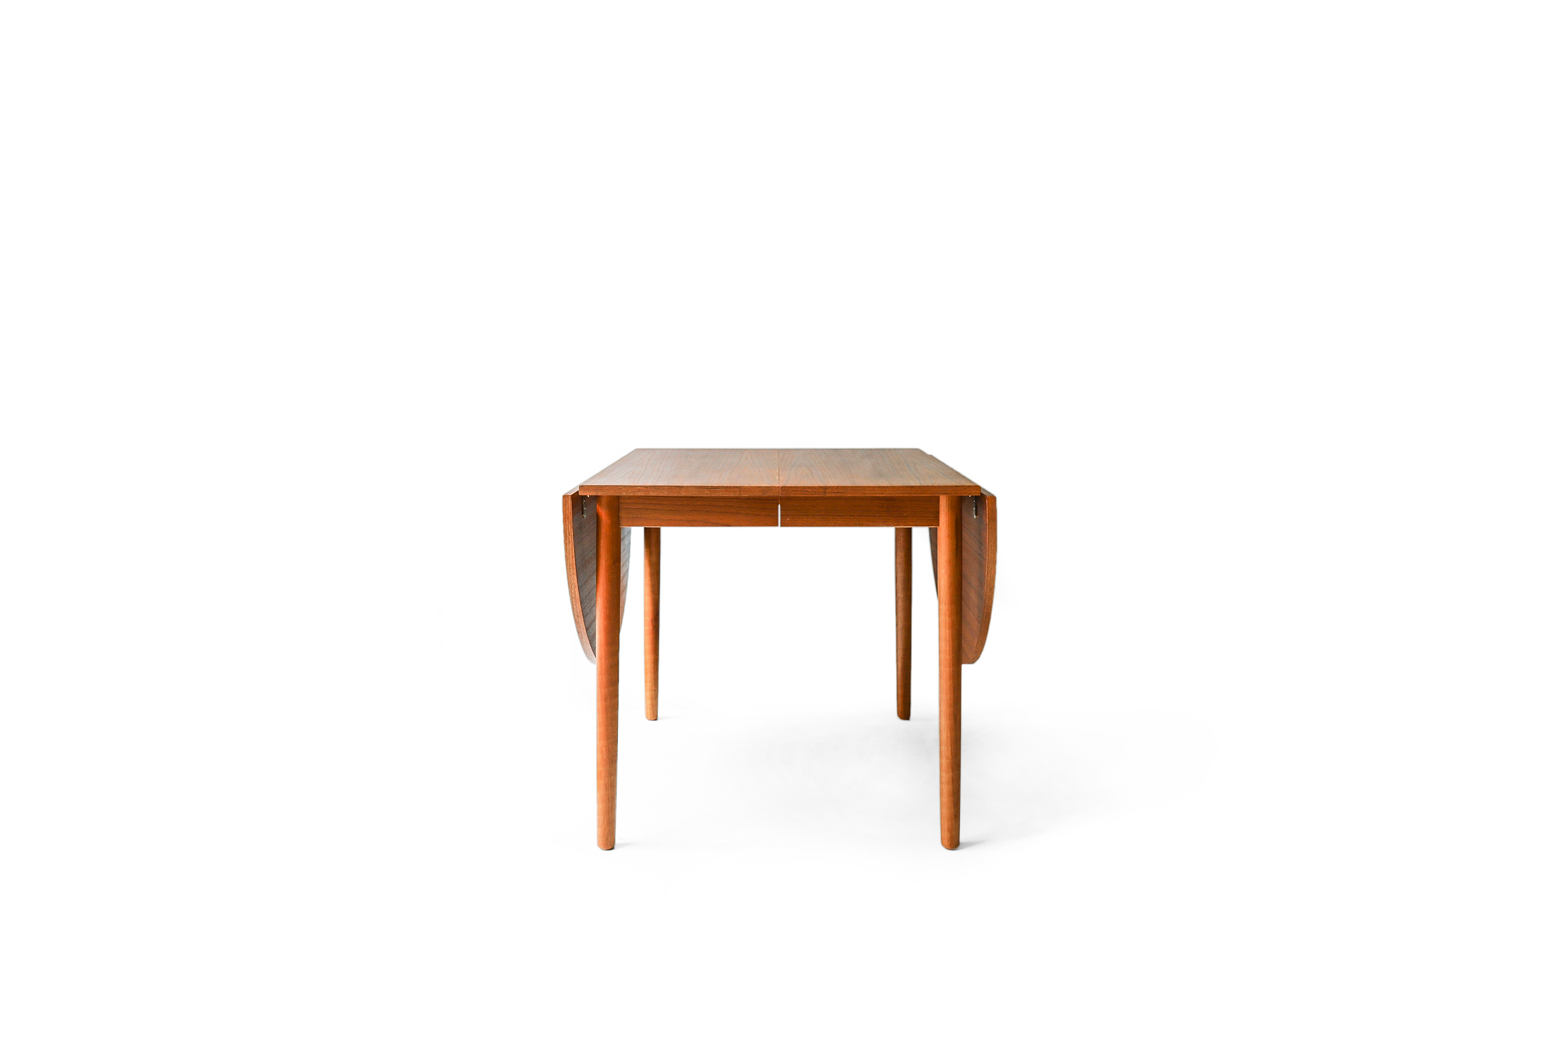 Danish Vintage Extension Dining Table/デンマーク ヴィンテージ エクステンション ダイニングテーブル チーク材 北欧モダン